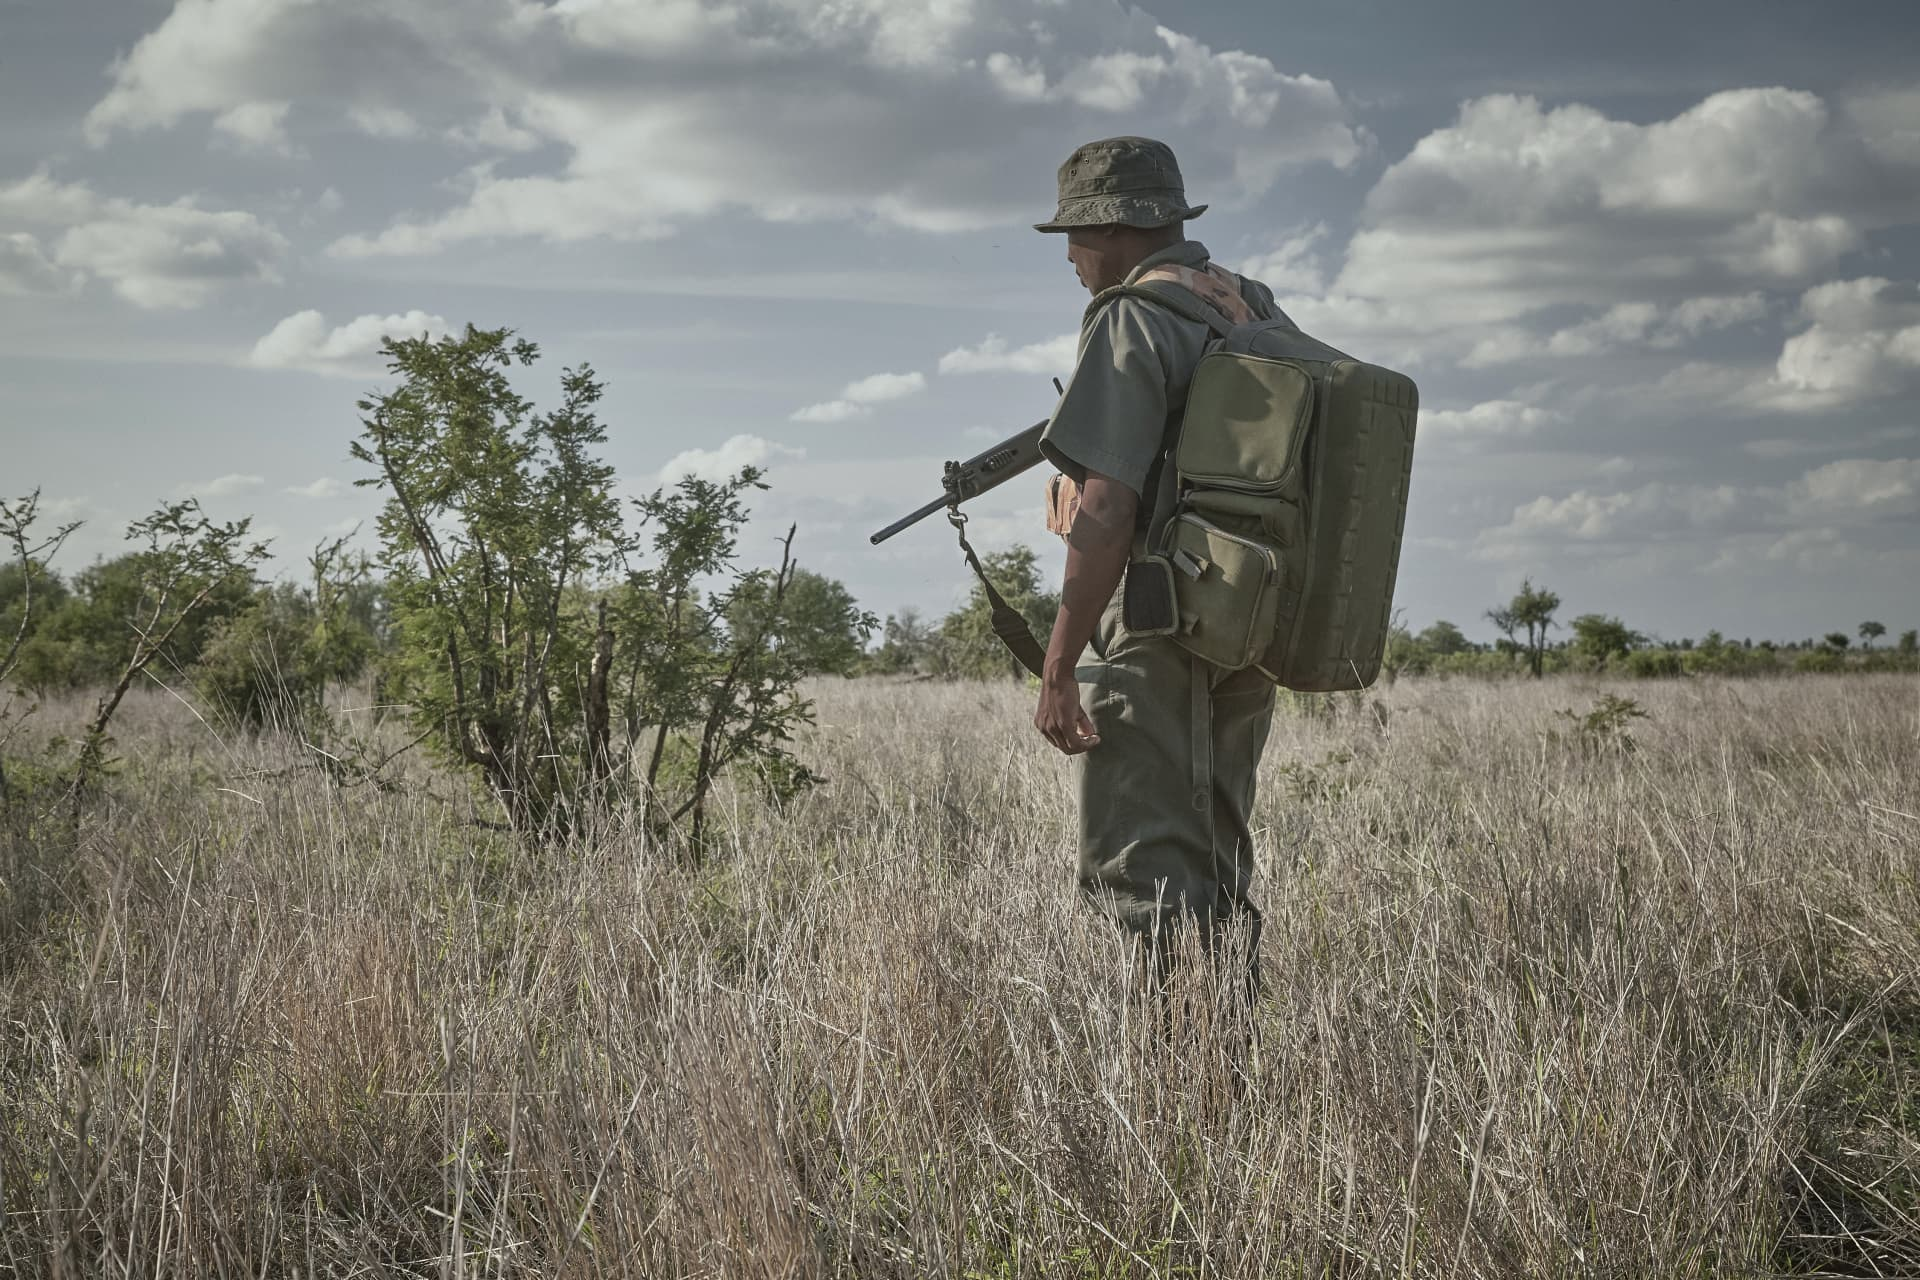 Field rangers work as a team and sometimes as a family, but it takes individual resolve to resume the daily challenges of patrolling and defending the park.